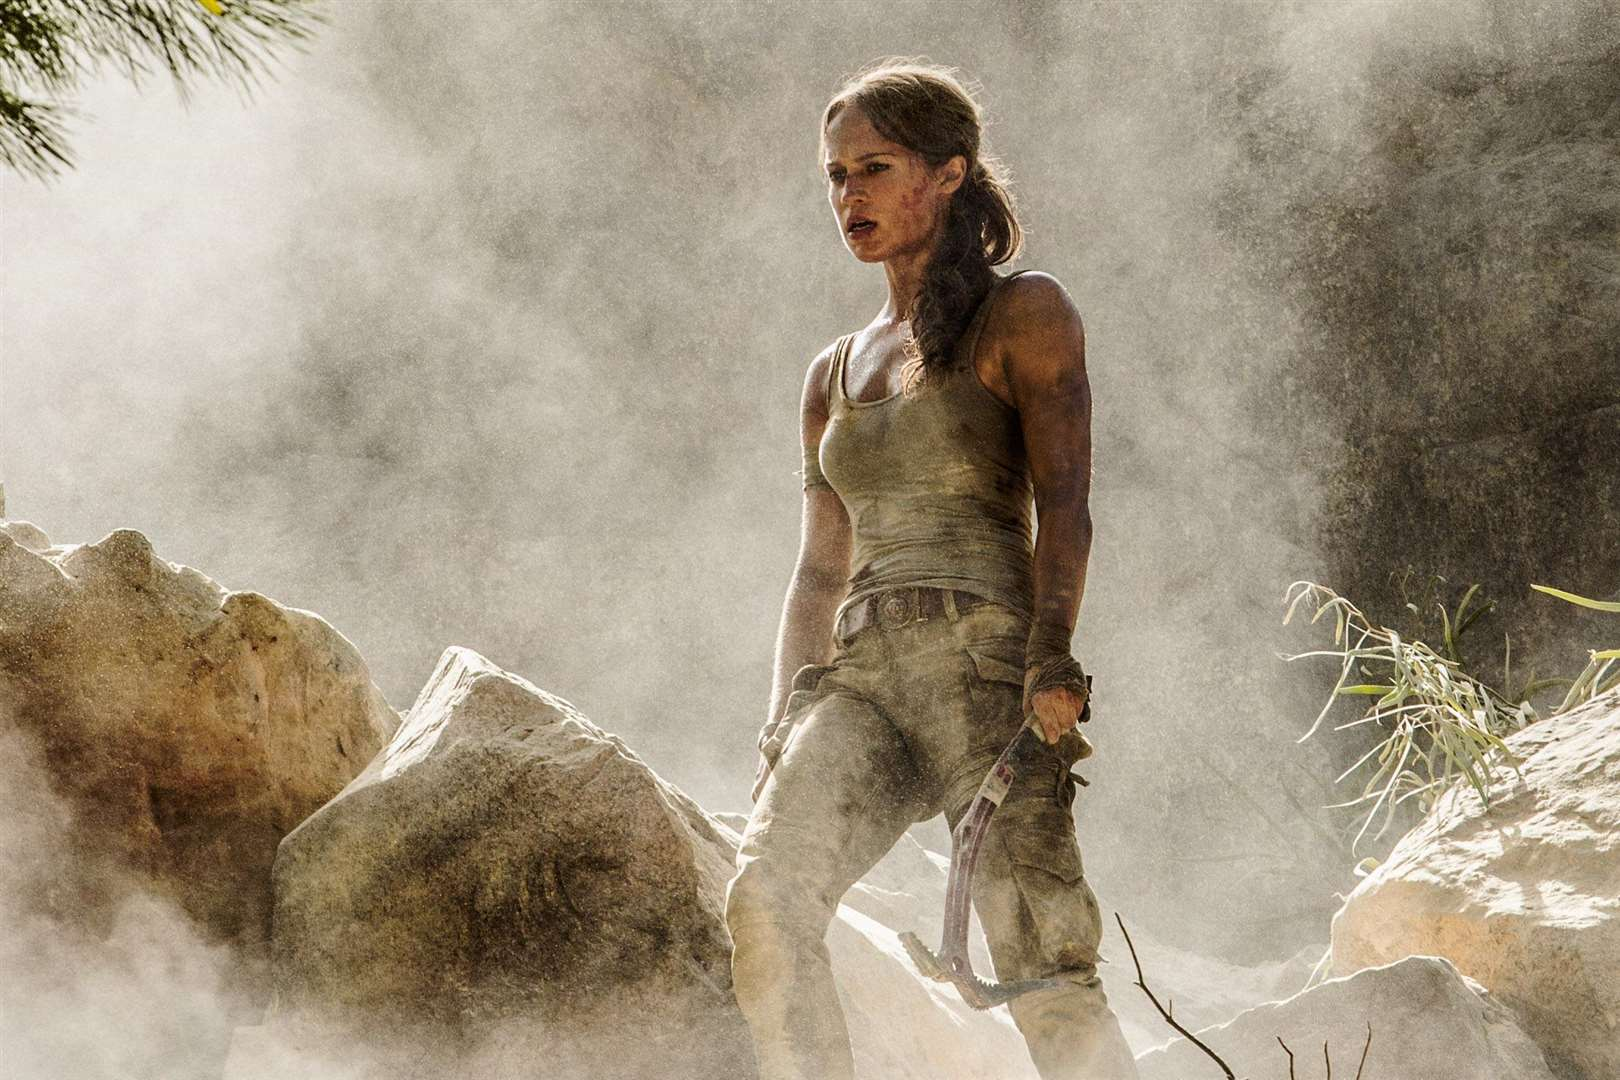 Alicia Vikander as Lara Croft in Tomb Raider, directed by Roar Uthaug.